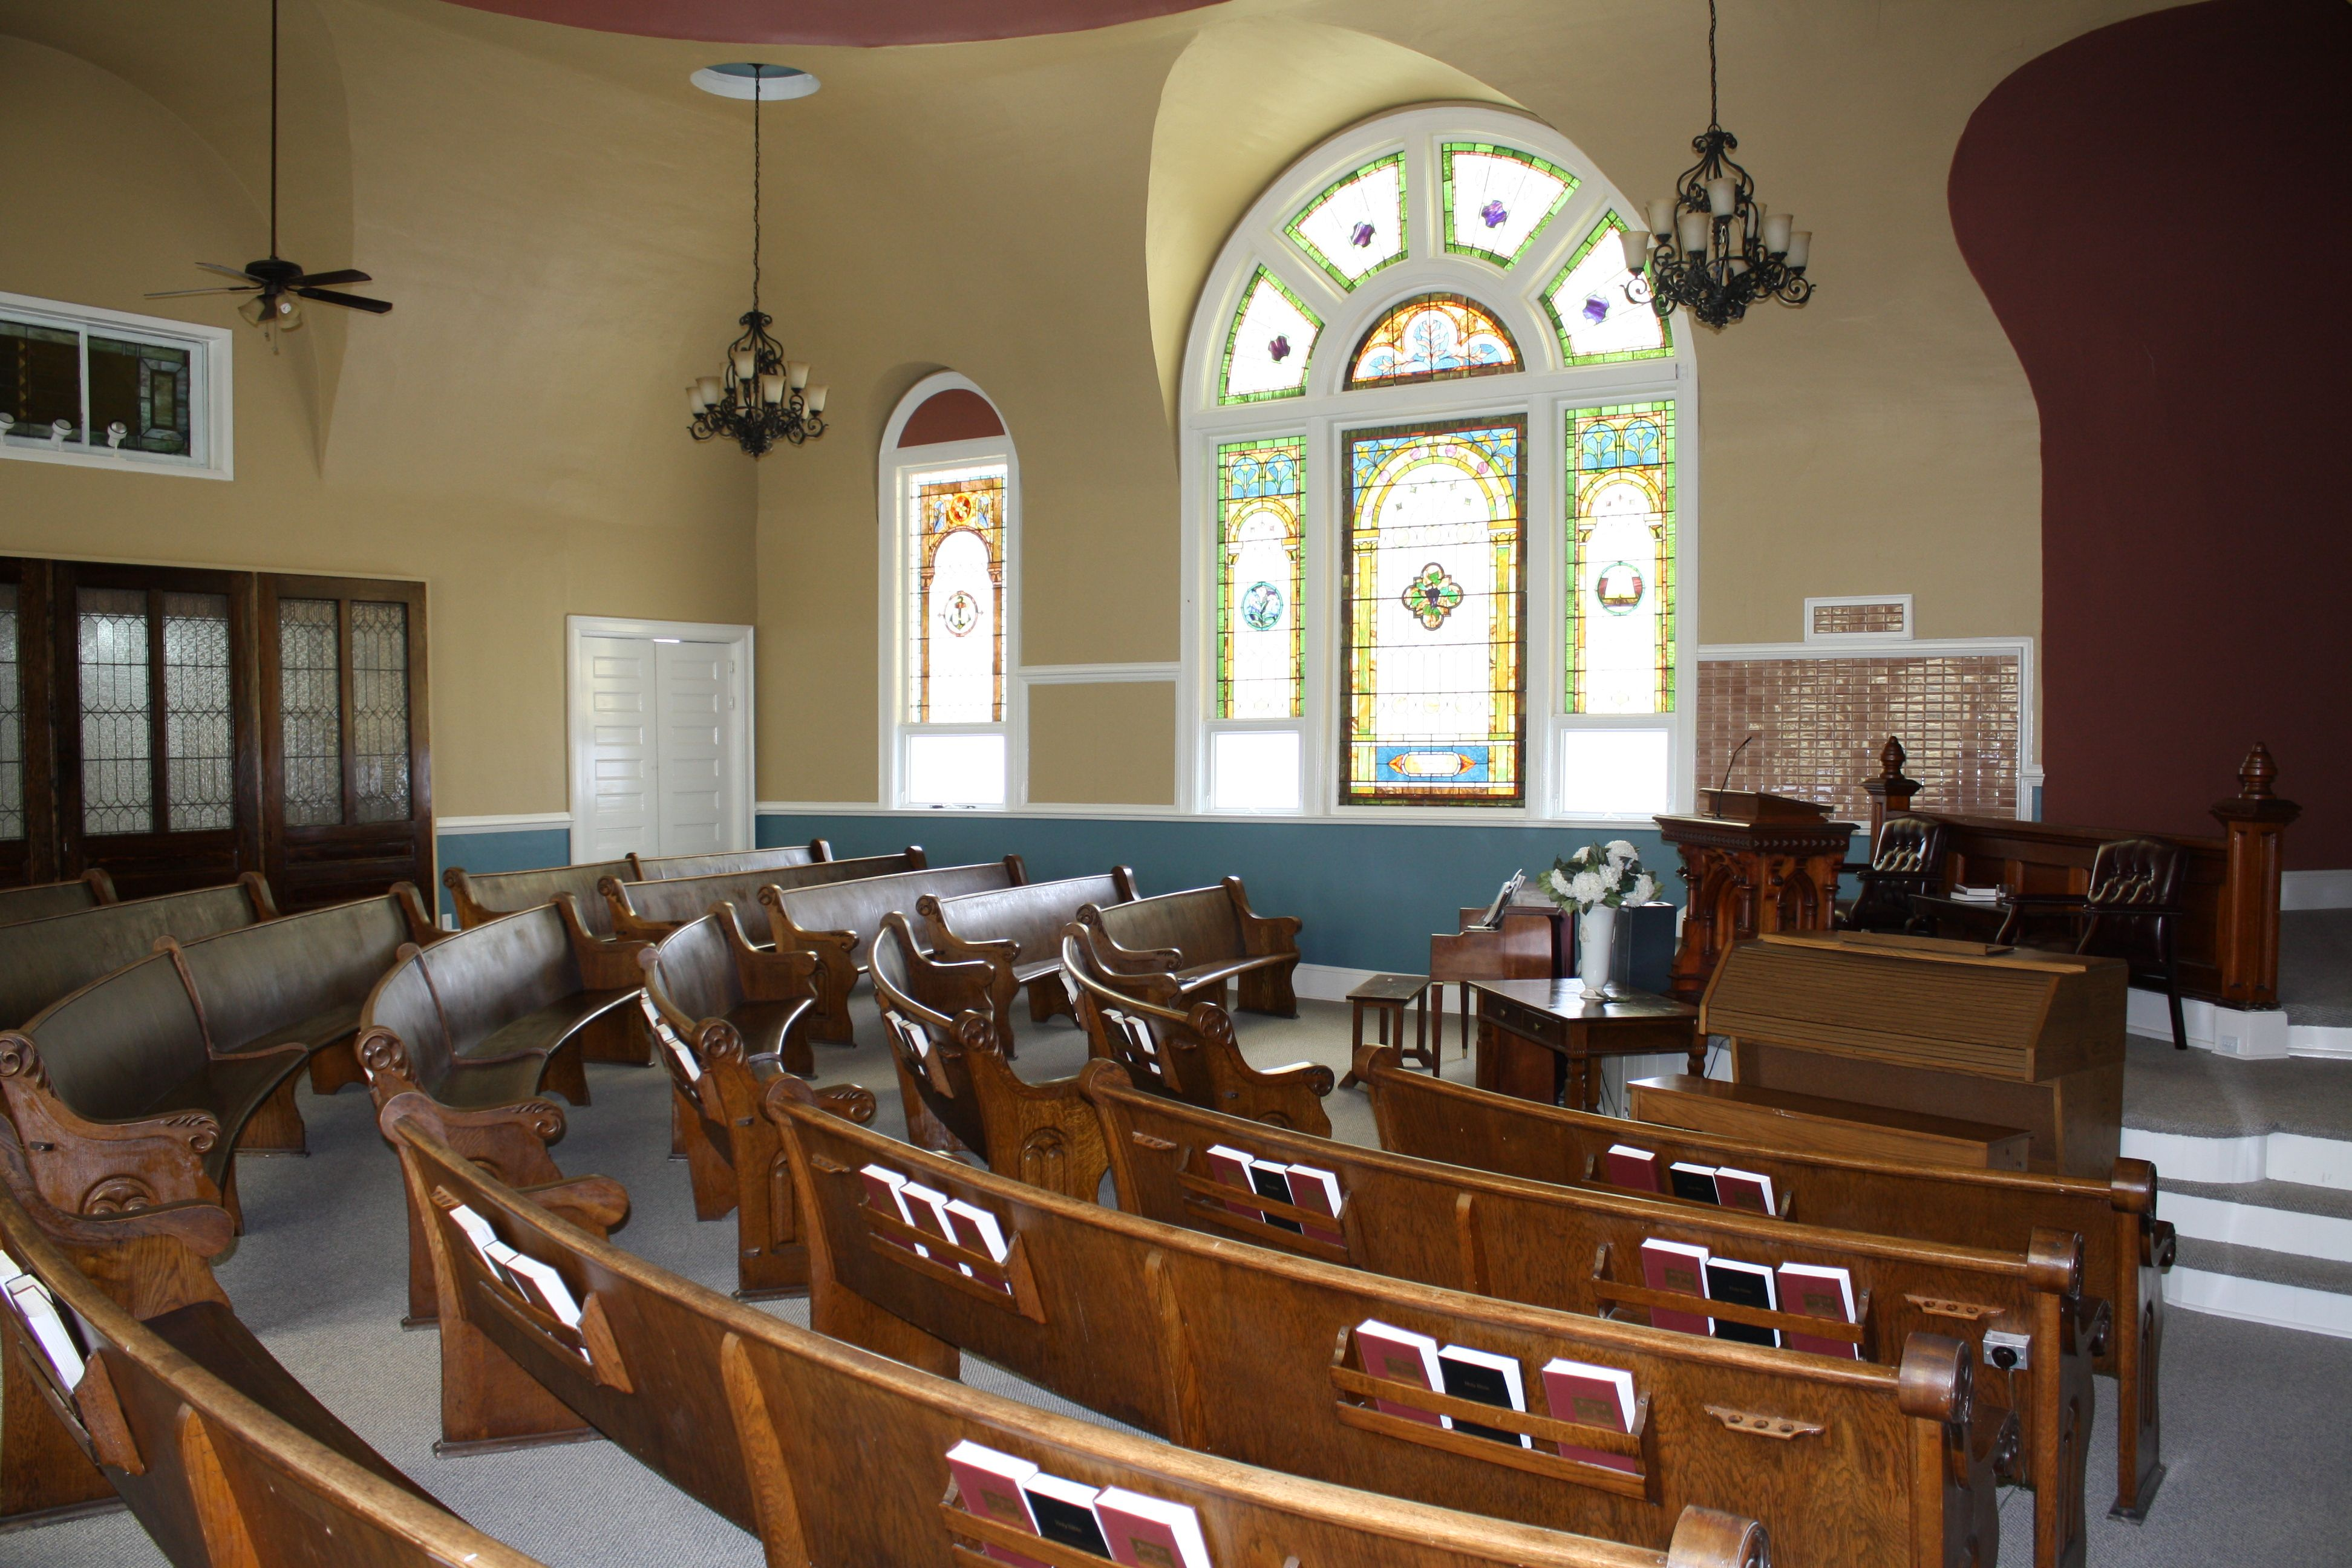 First baptist church of black riverny near fort drum and